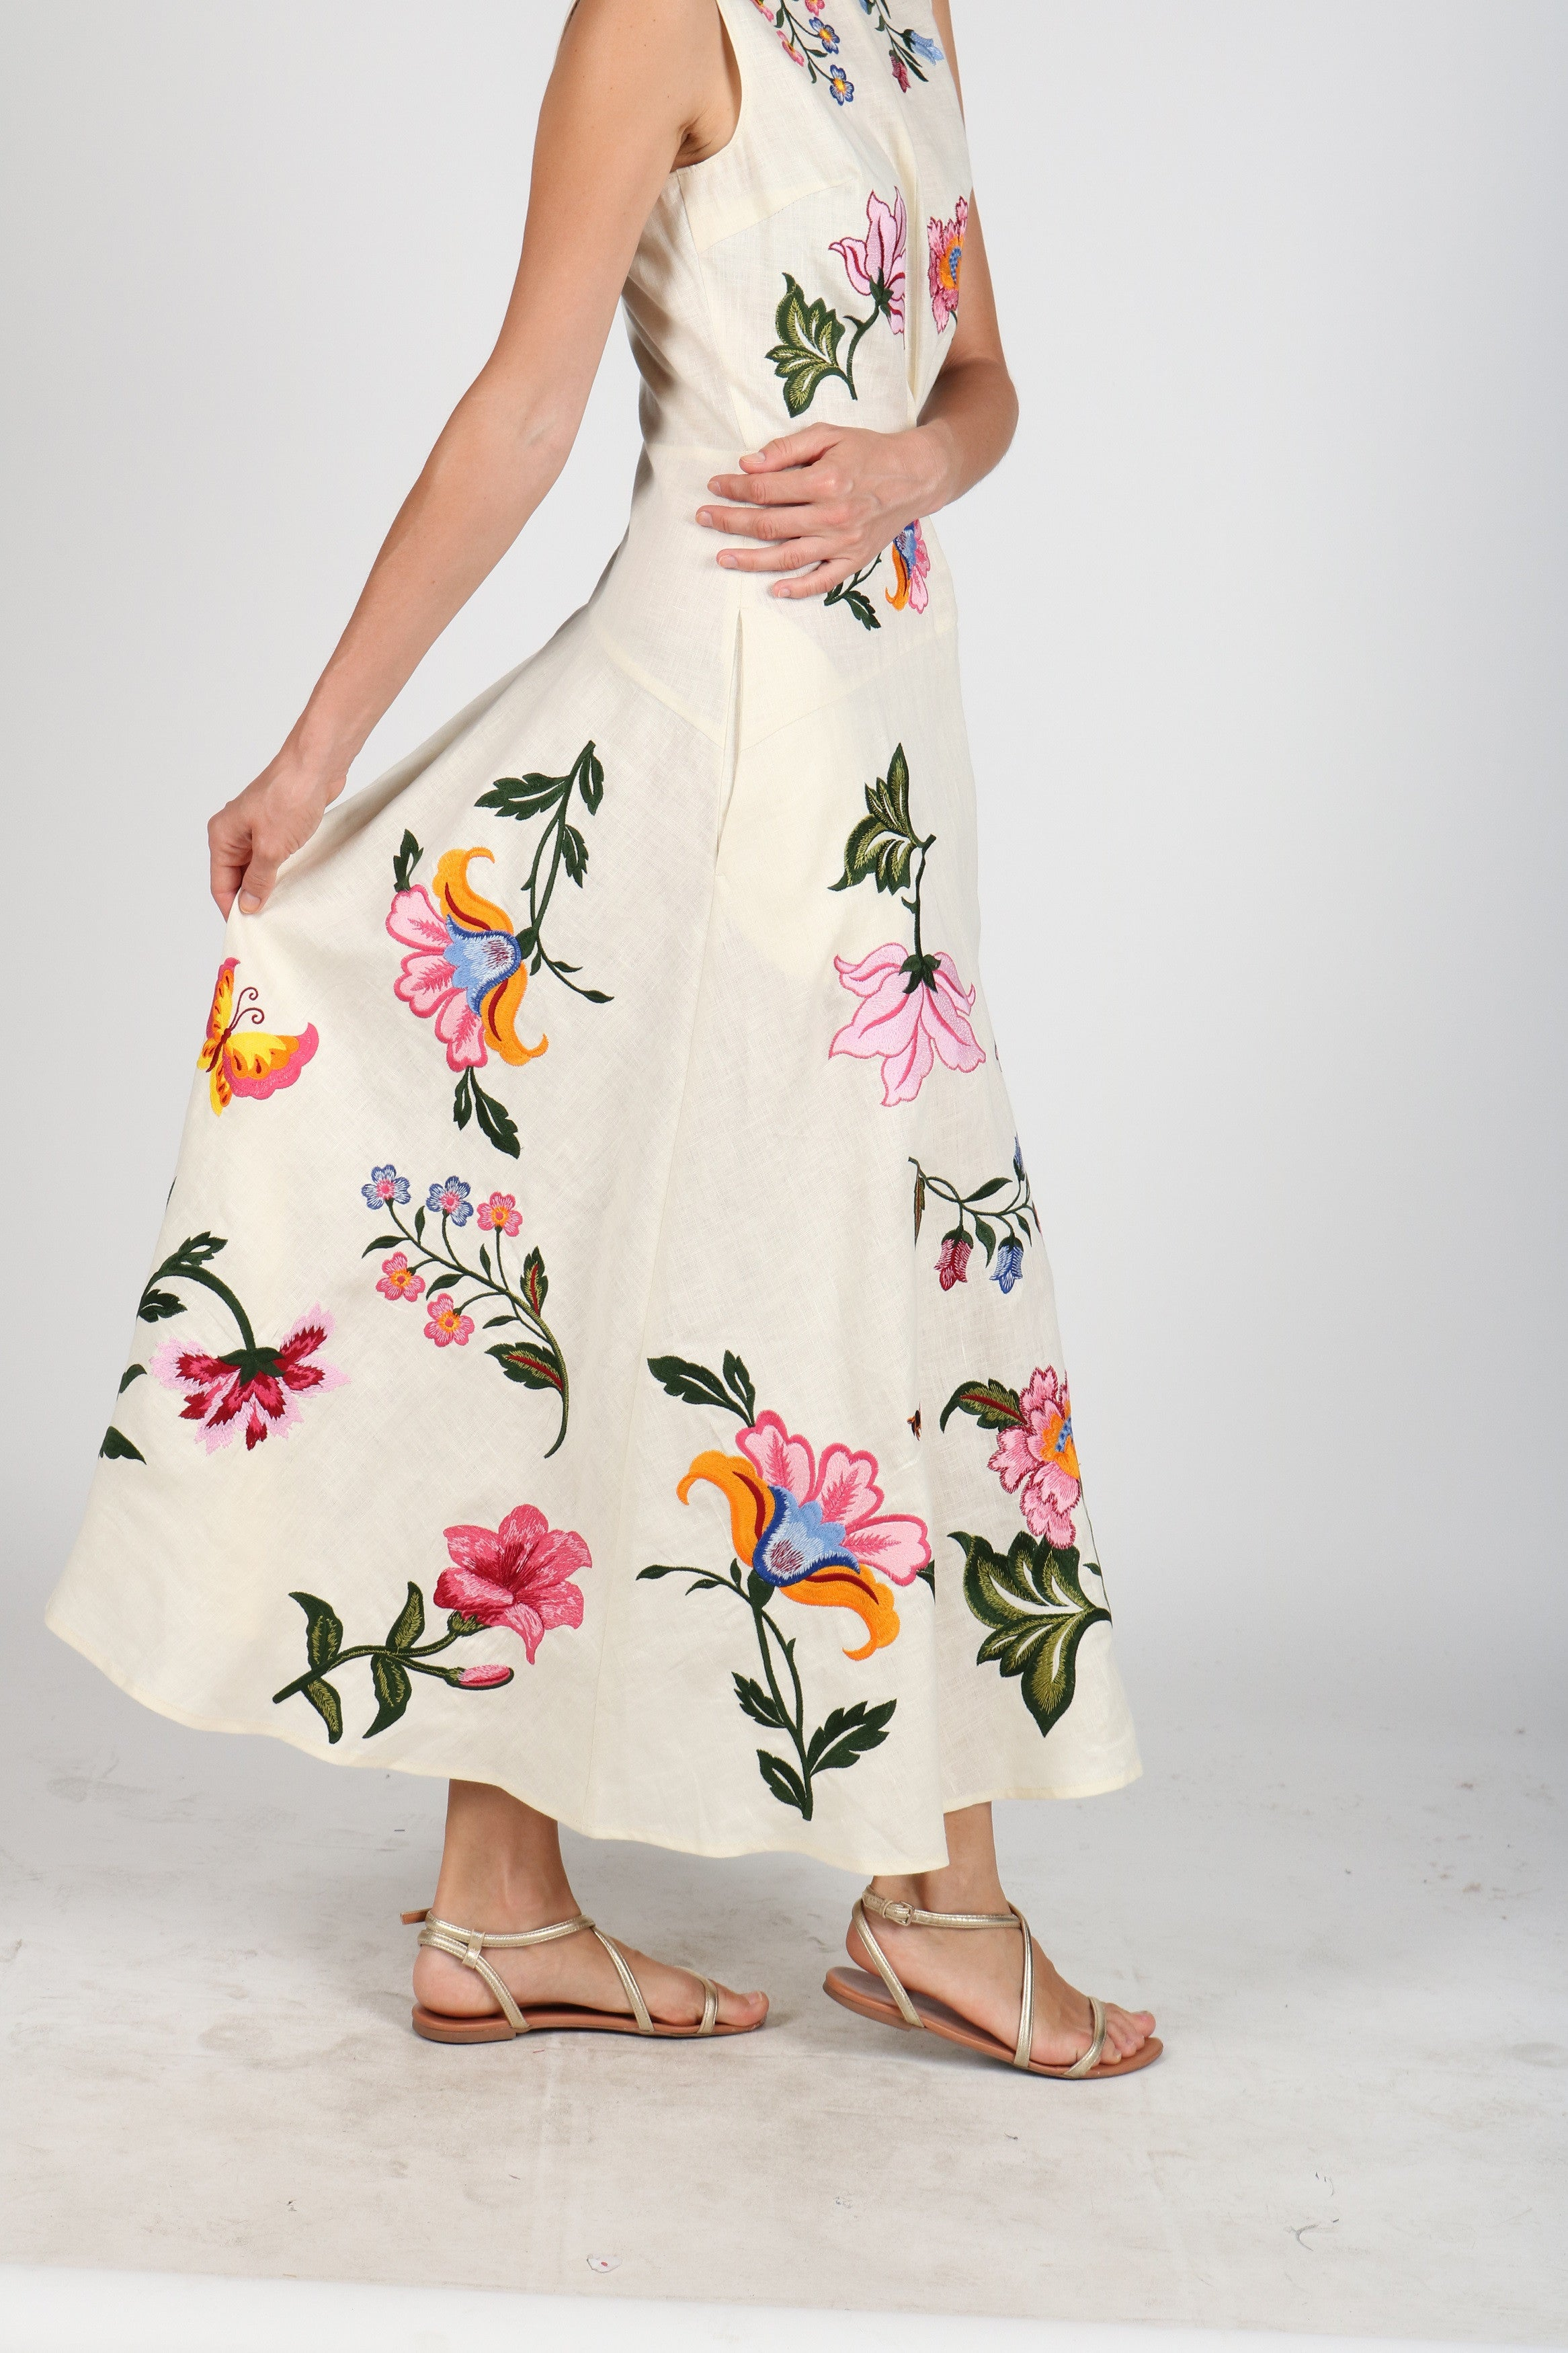 Fanm Mon DAHLIA Cream Linen Exotic Tropical Floral Embroidery Vyshyvanka MIDI Dress size XS-XXL